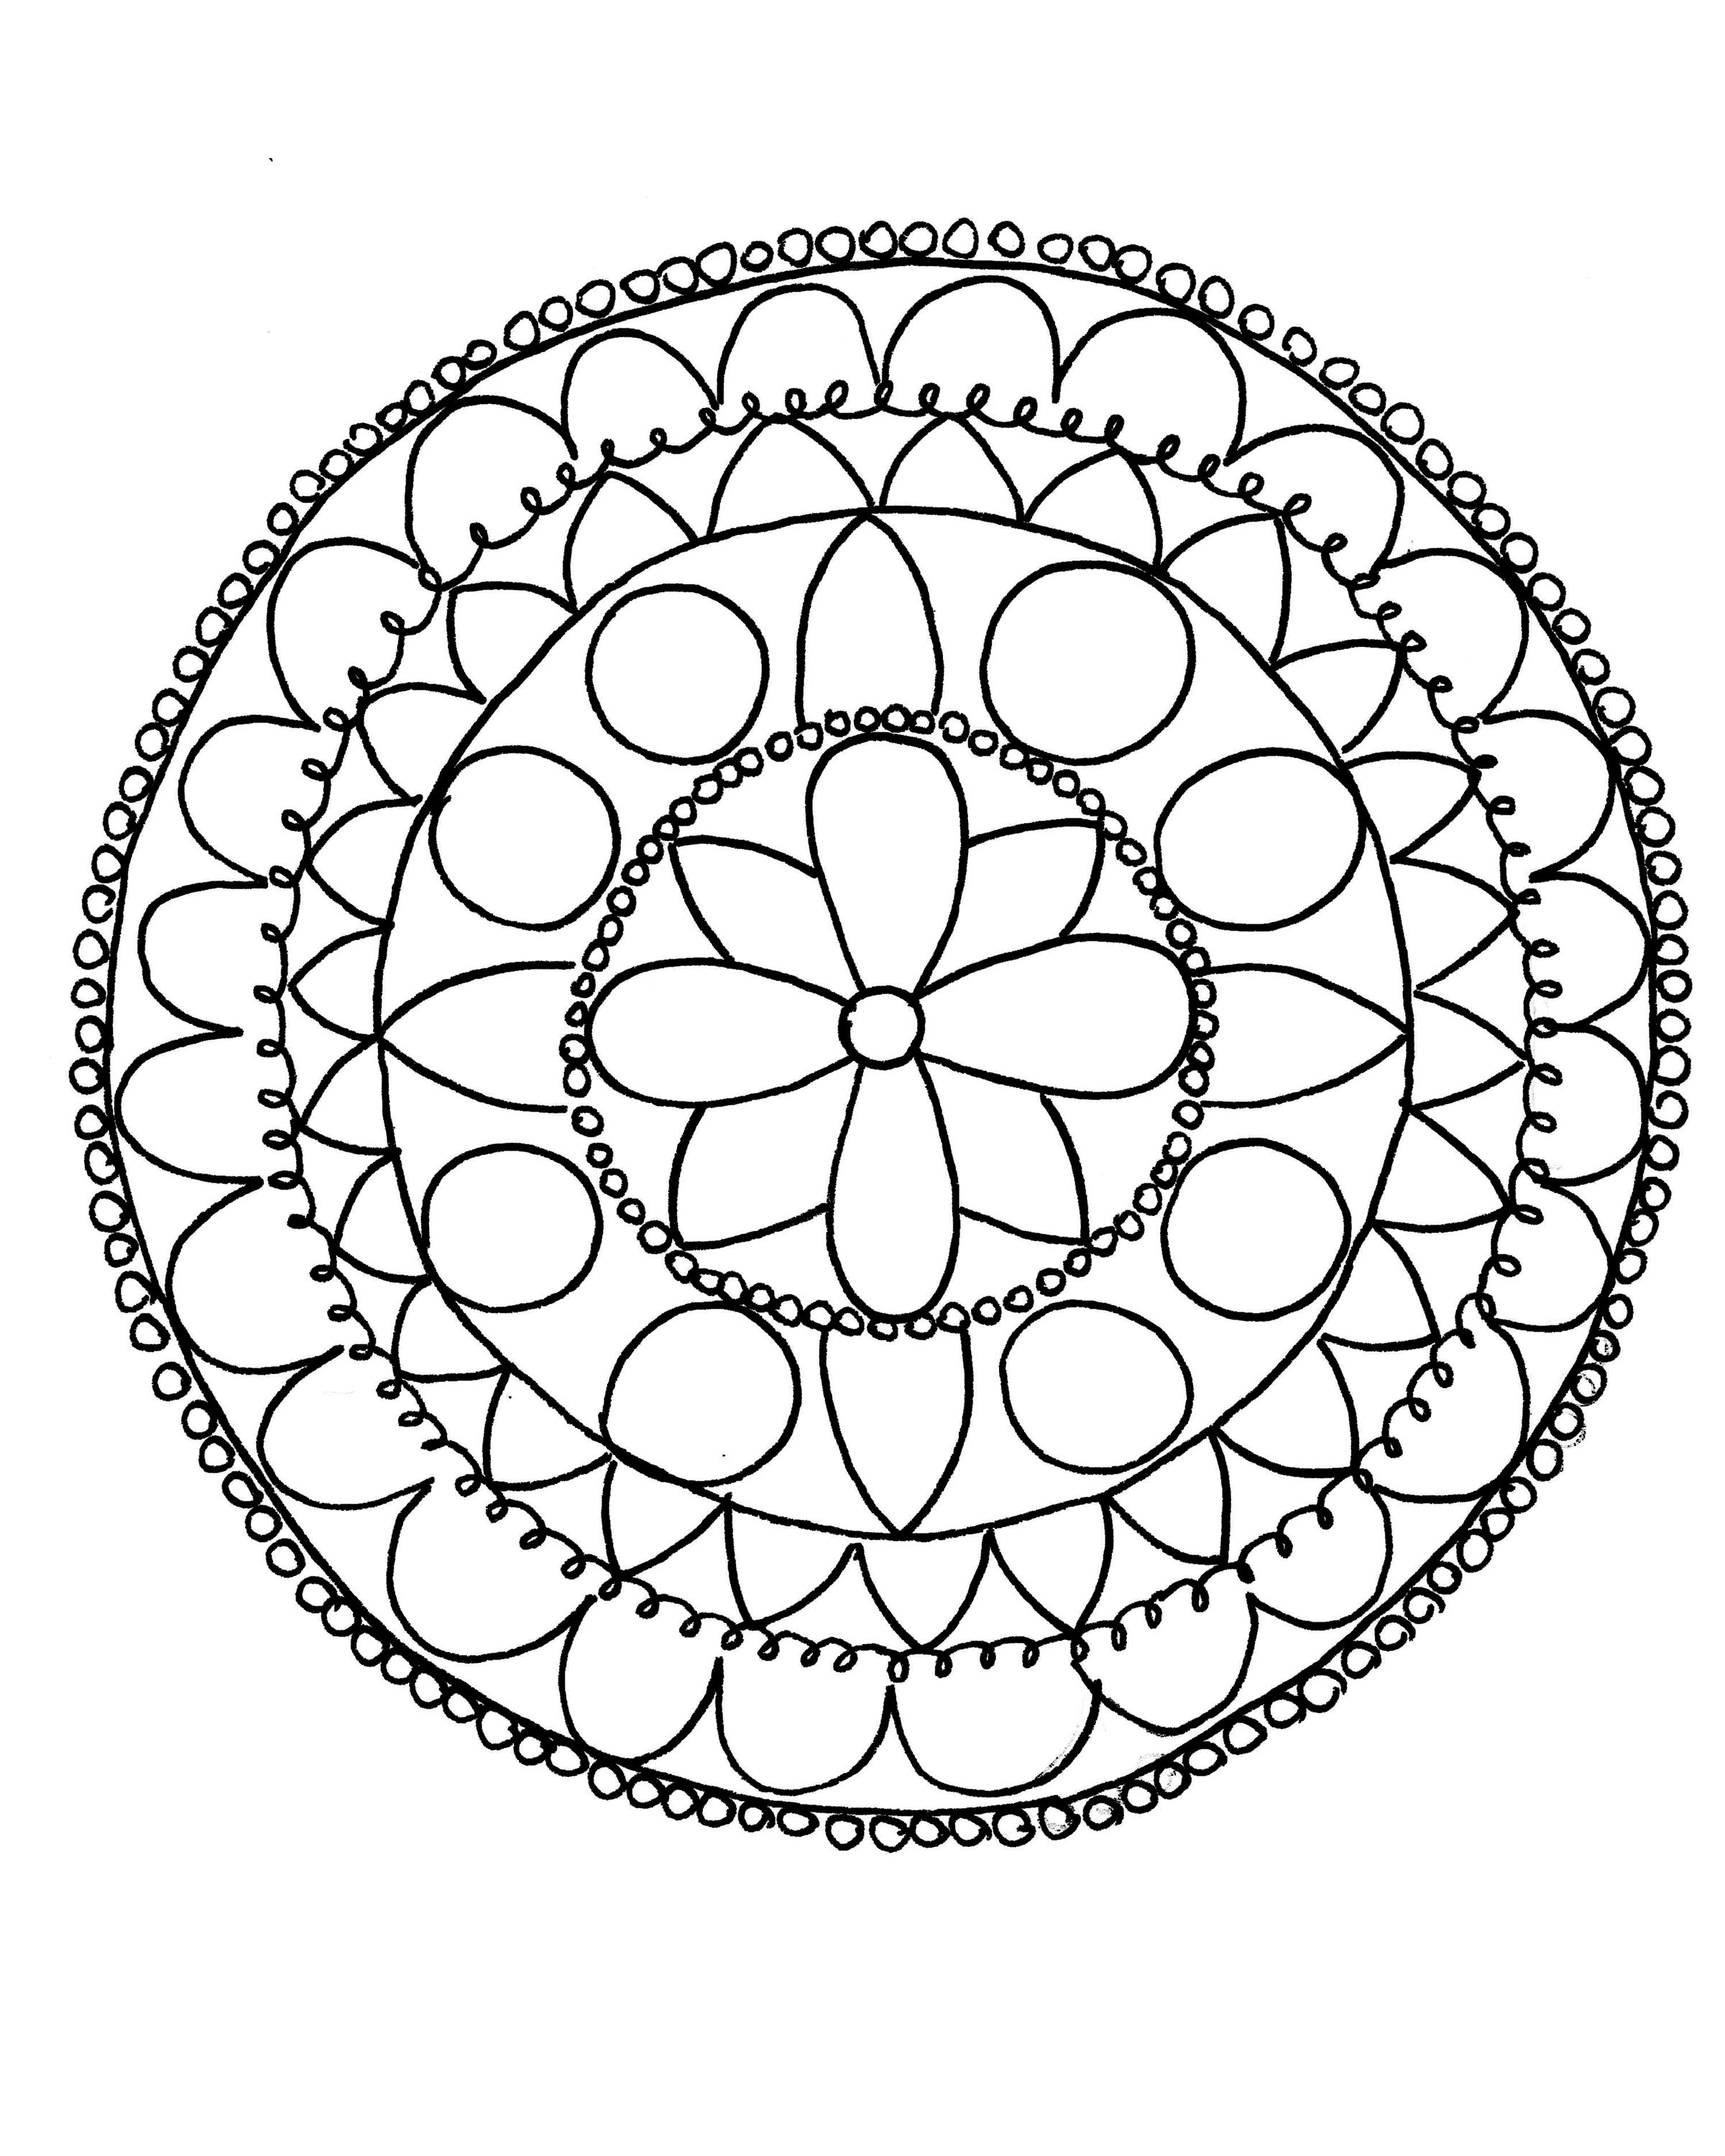 Print And Color Mandalas Online Mandala Coloring Pages Mandala Coloring Mandala Coloring Books